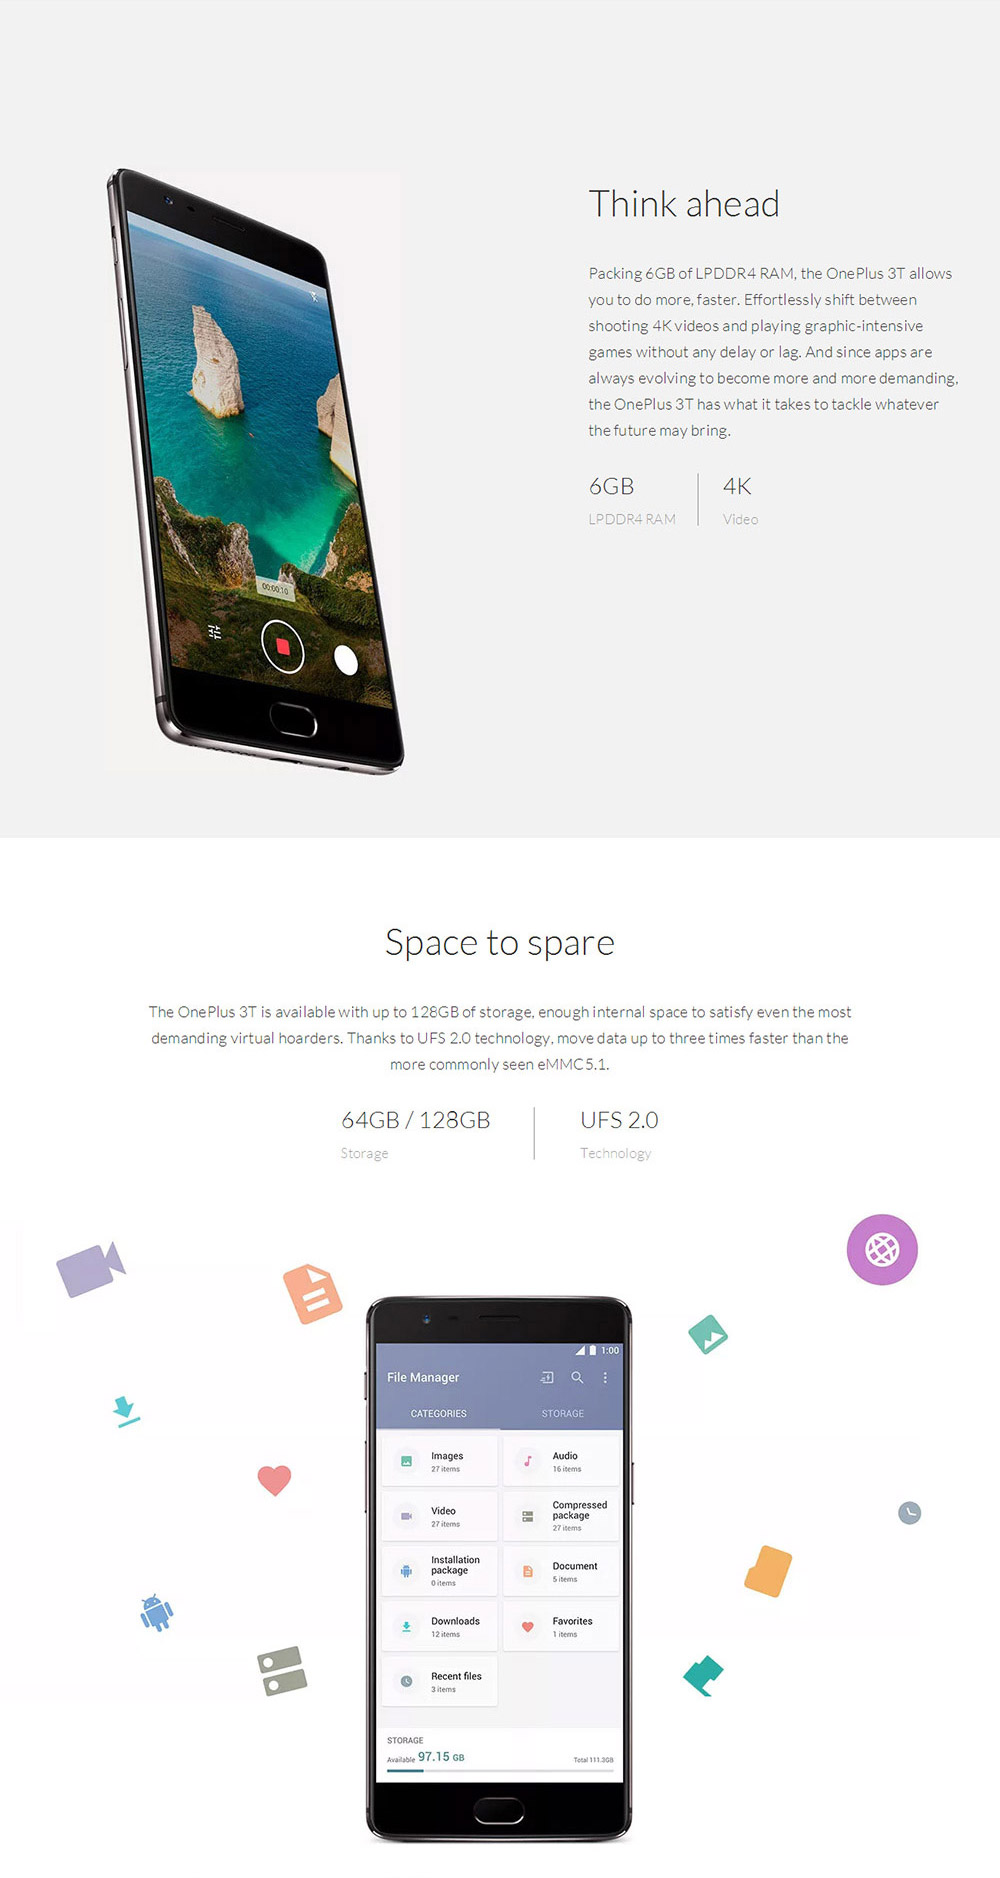 ONEPLUS 3T(A3010) 5.5 Inch AMOLED FHD 2.5D Corning Gorilla Glass 4 Screen 6GB RAM 128GB ROM 16.0MP+16.0MP Cam Qualcomm Snapdragon 821 Android 6.0 OS Smartphone  Dash Charge Touch ID NFC Type-C- Black